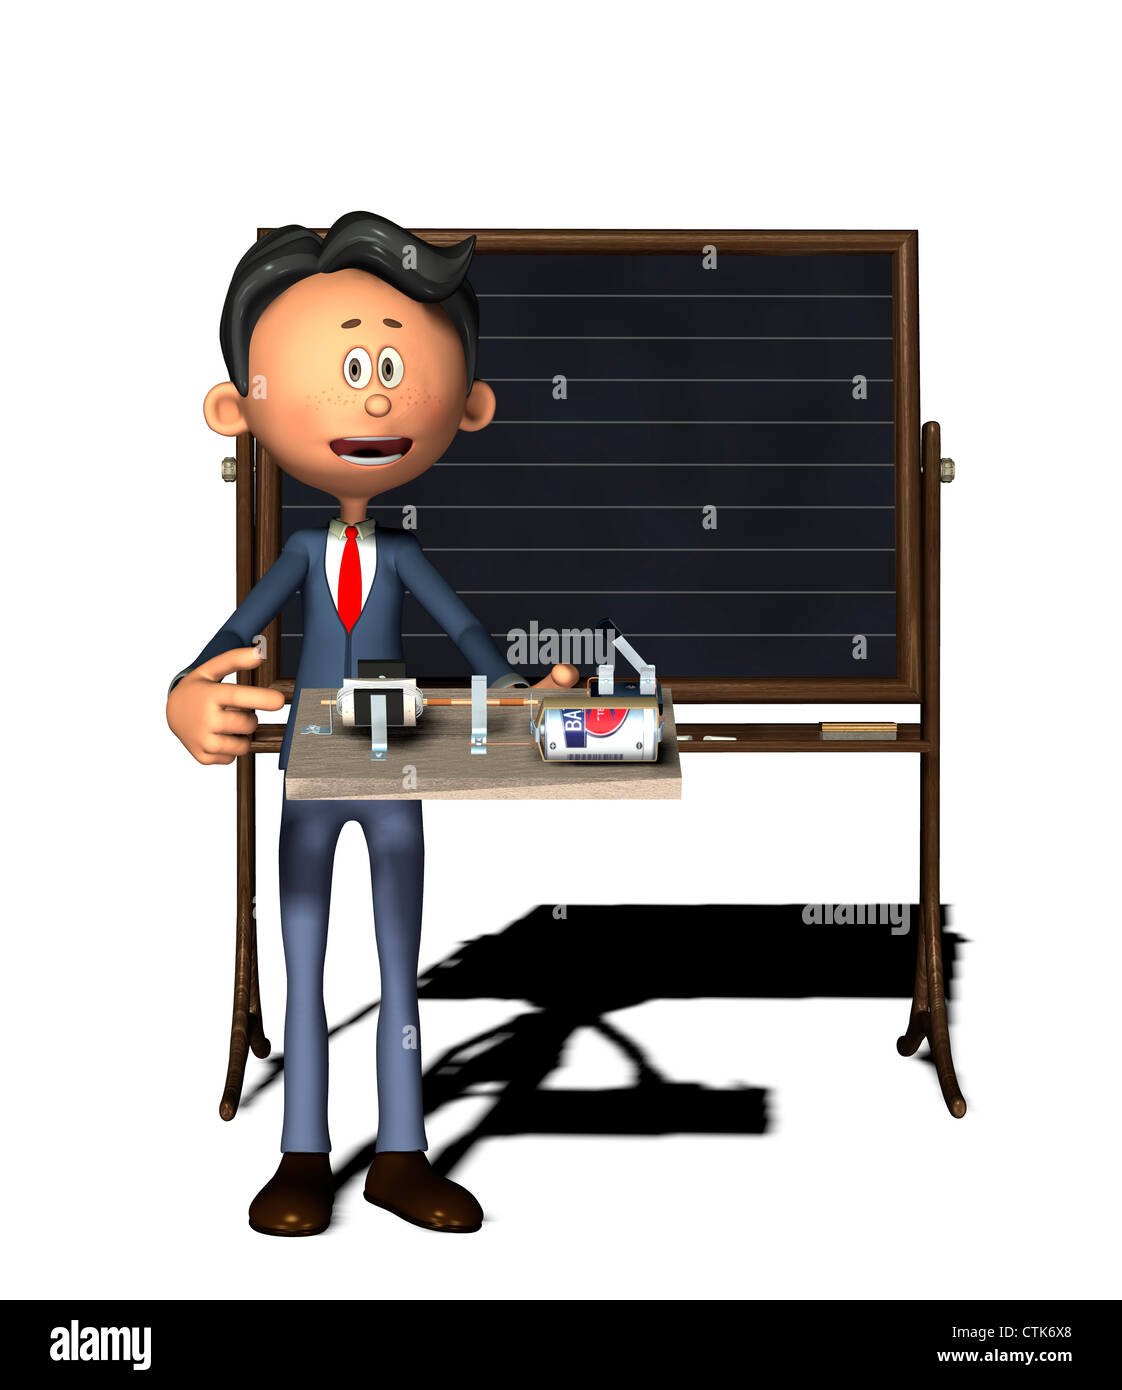 Cartoon-Figur Physiklehrer mit Elektronik-Experiment (Elektromotor) Stockbild